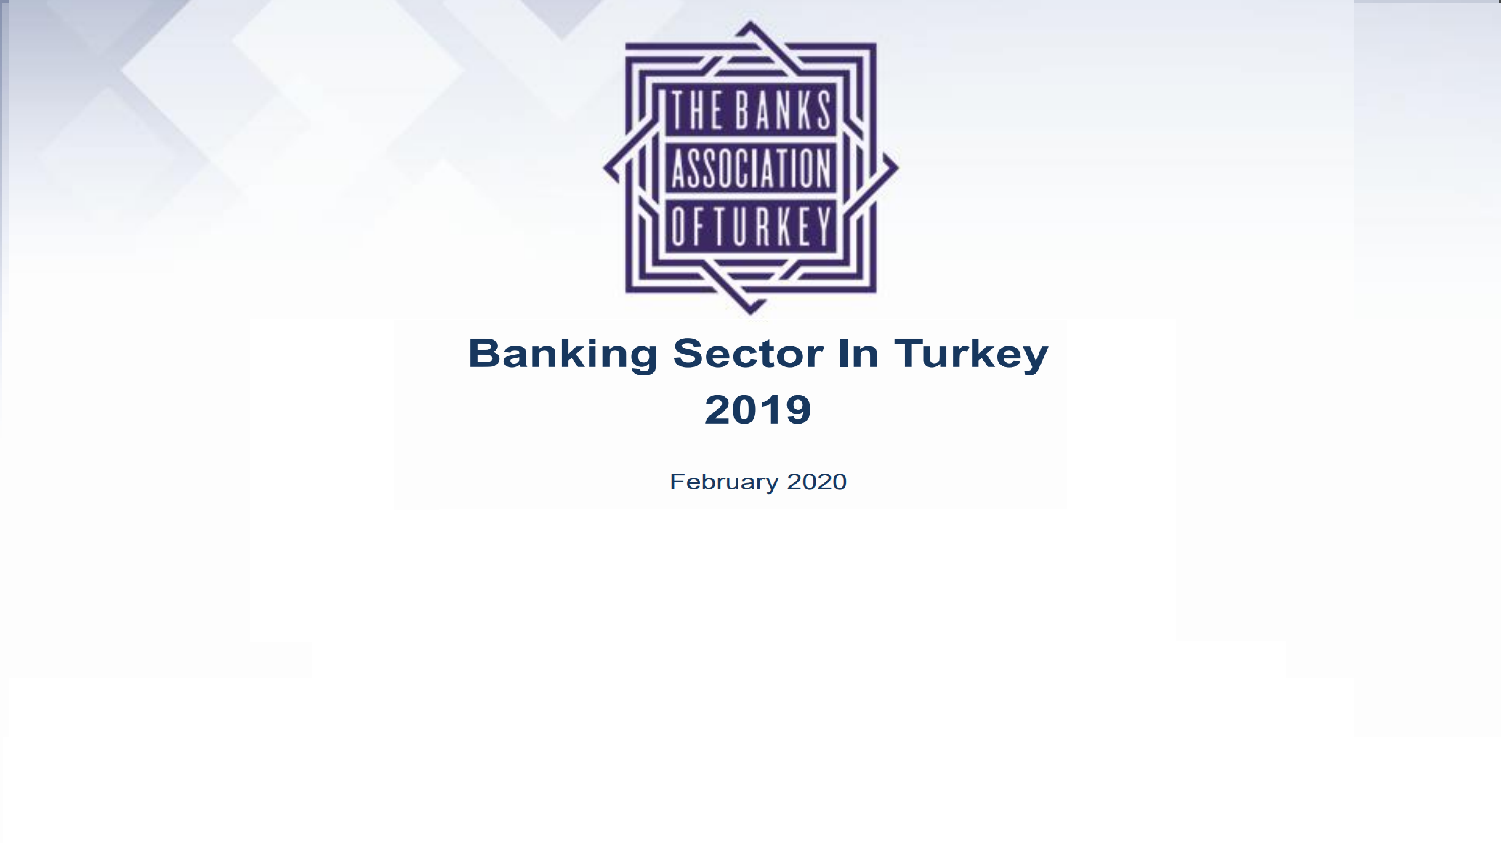 Banking Sector In Turkey 2019